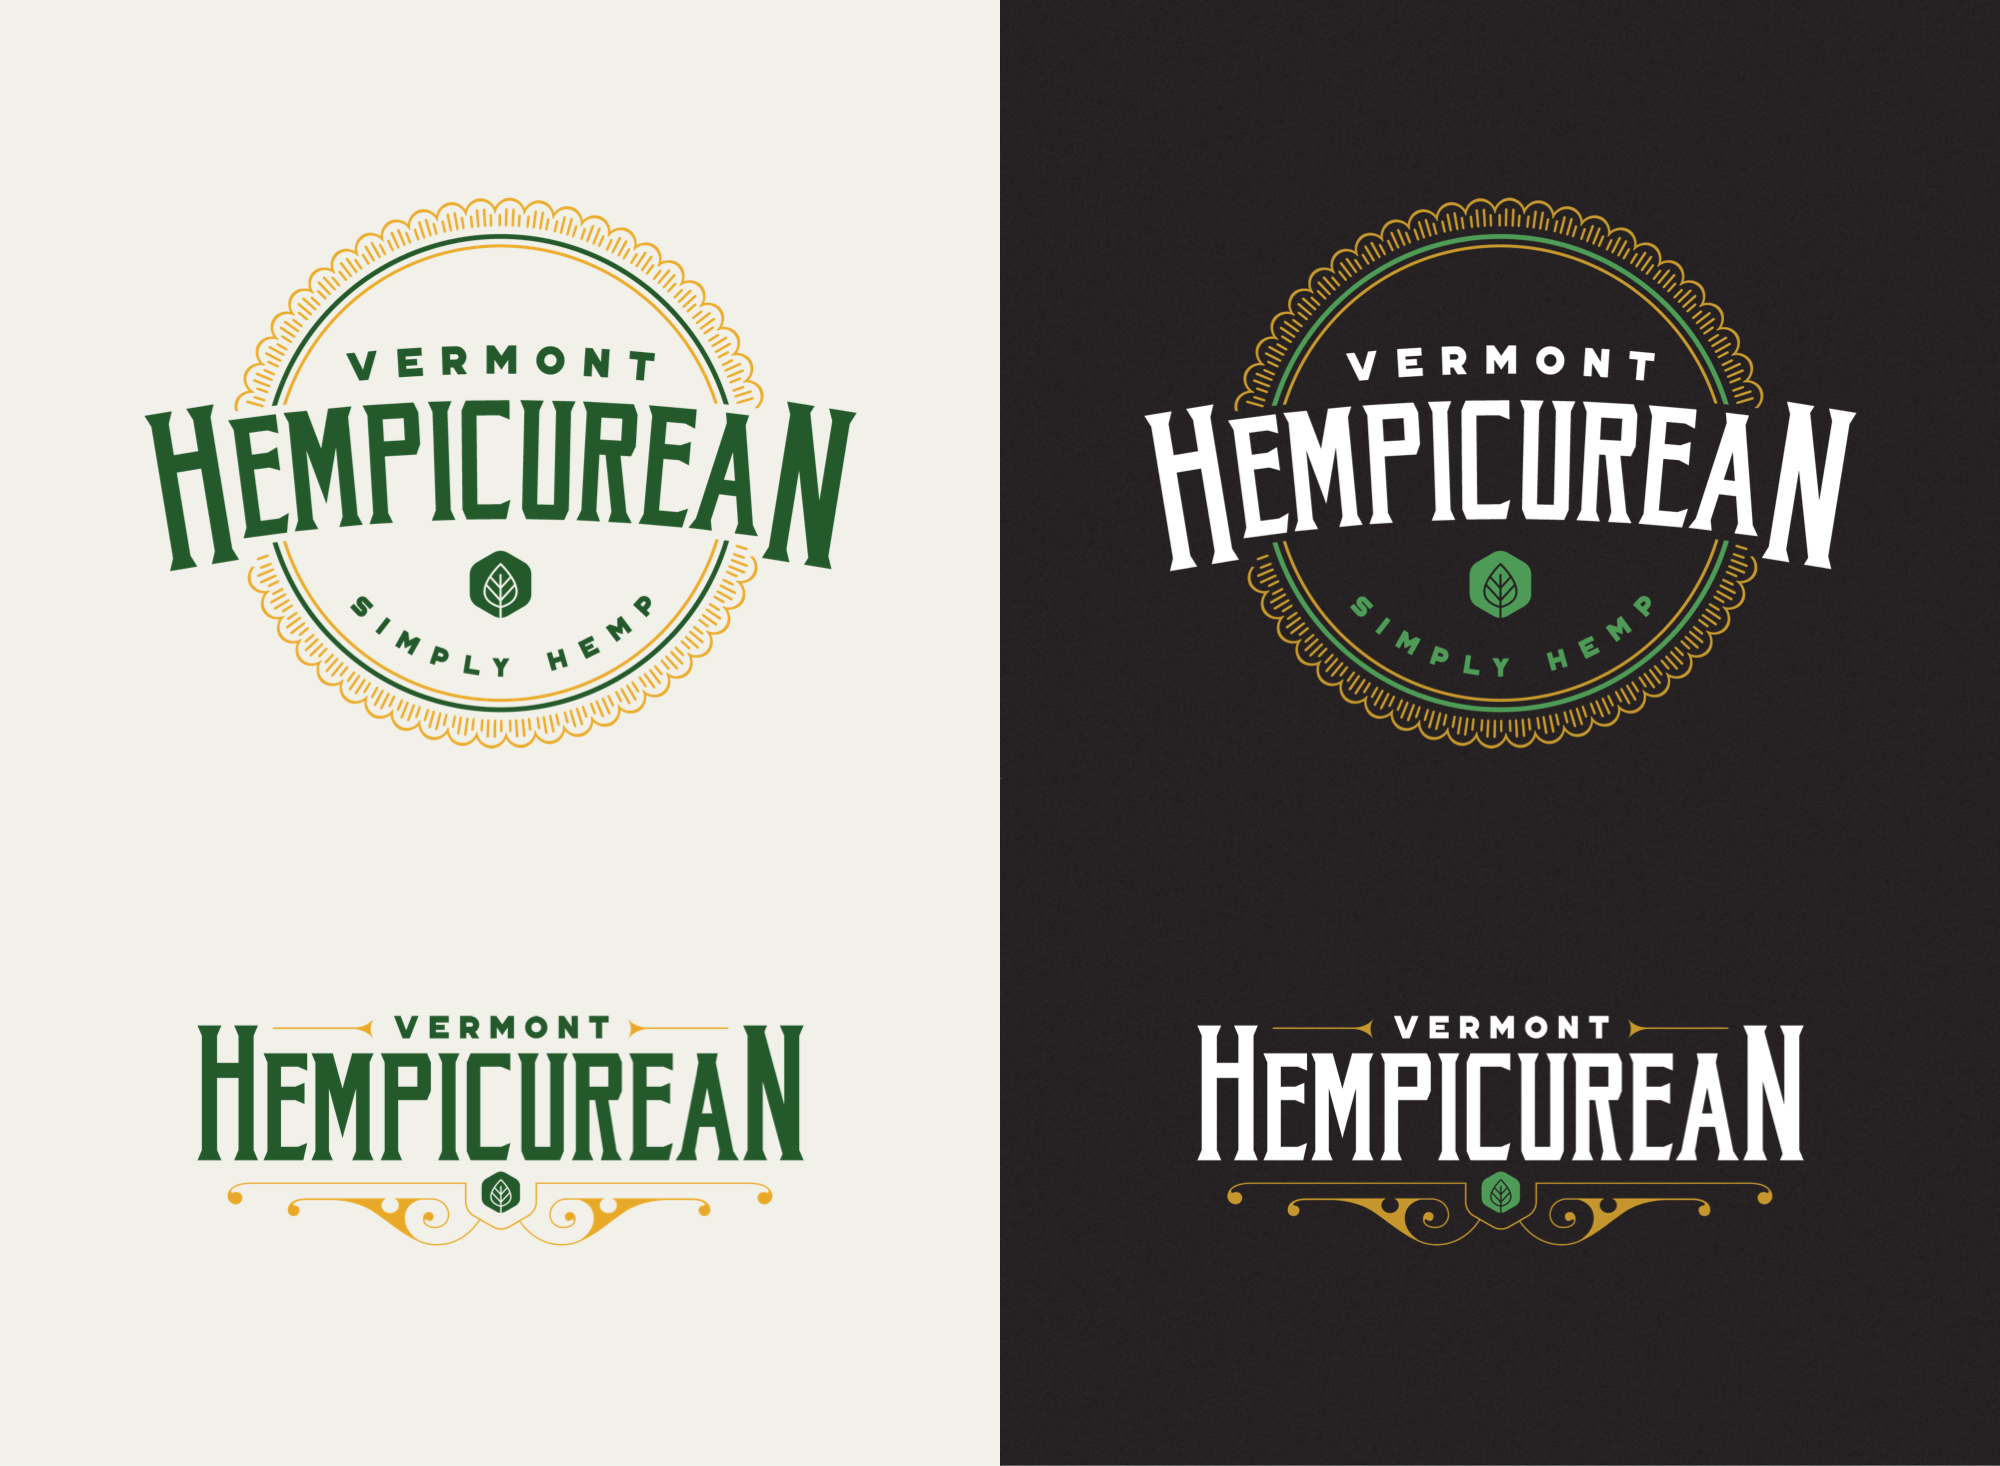 Hempicurean_logo_grid